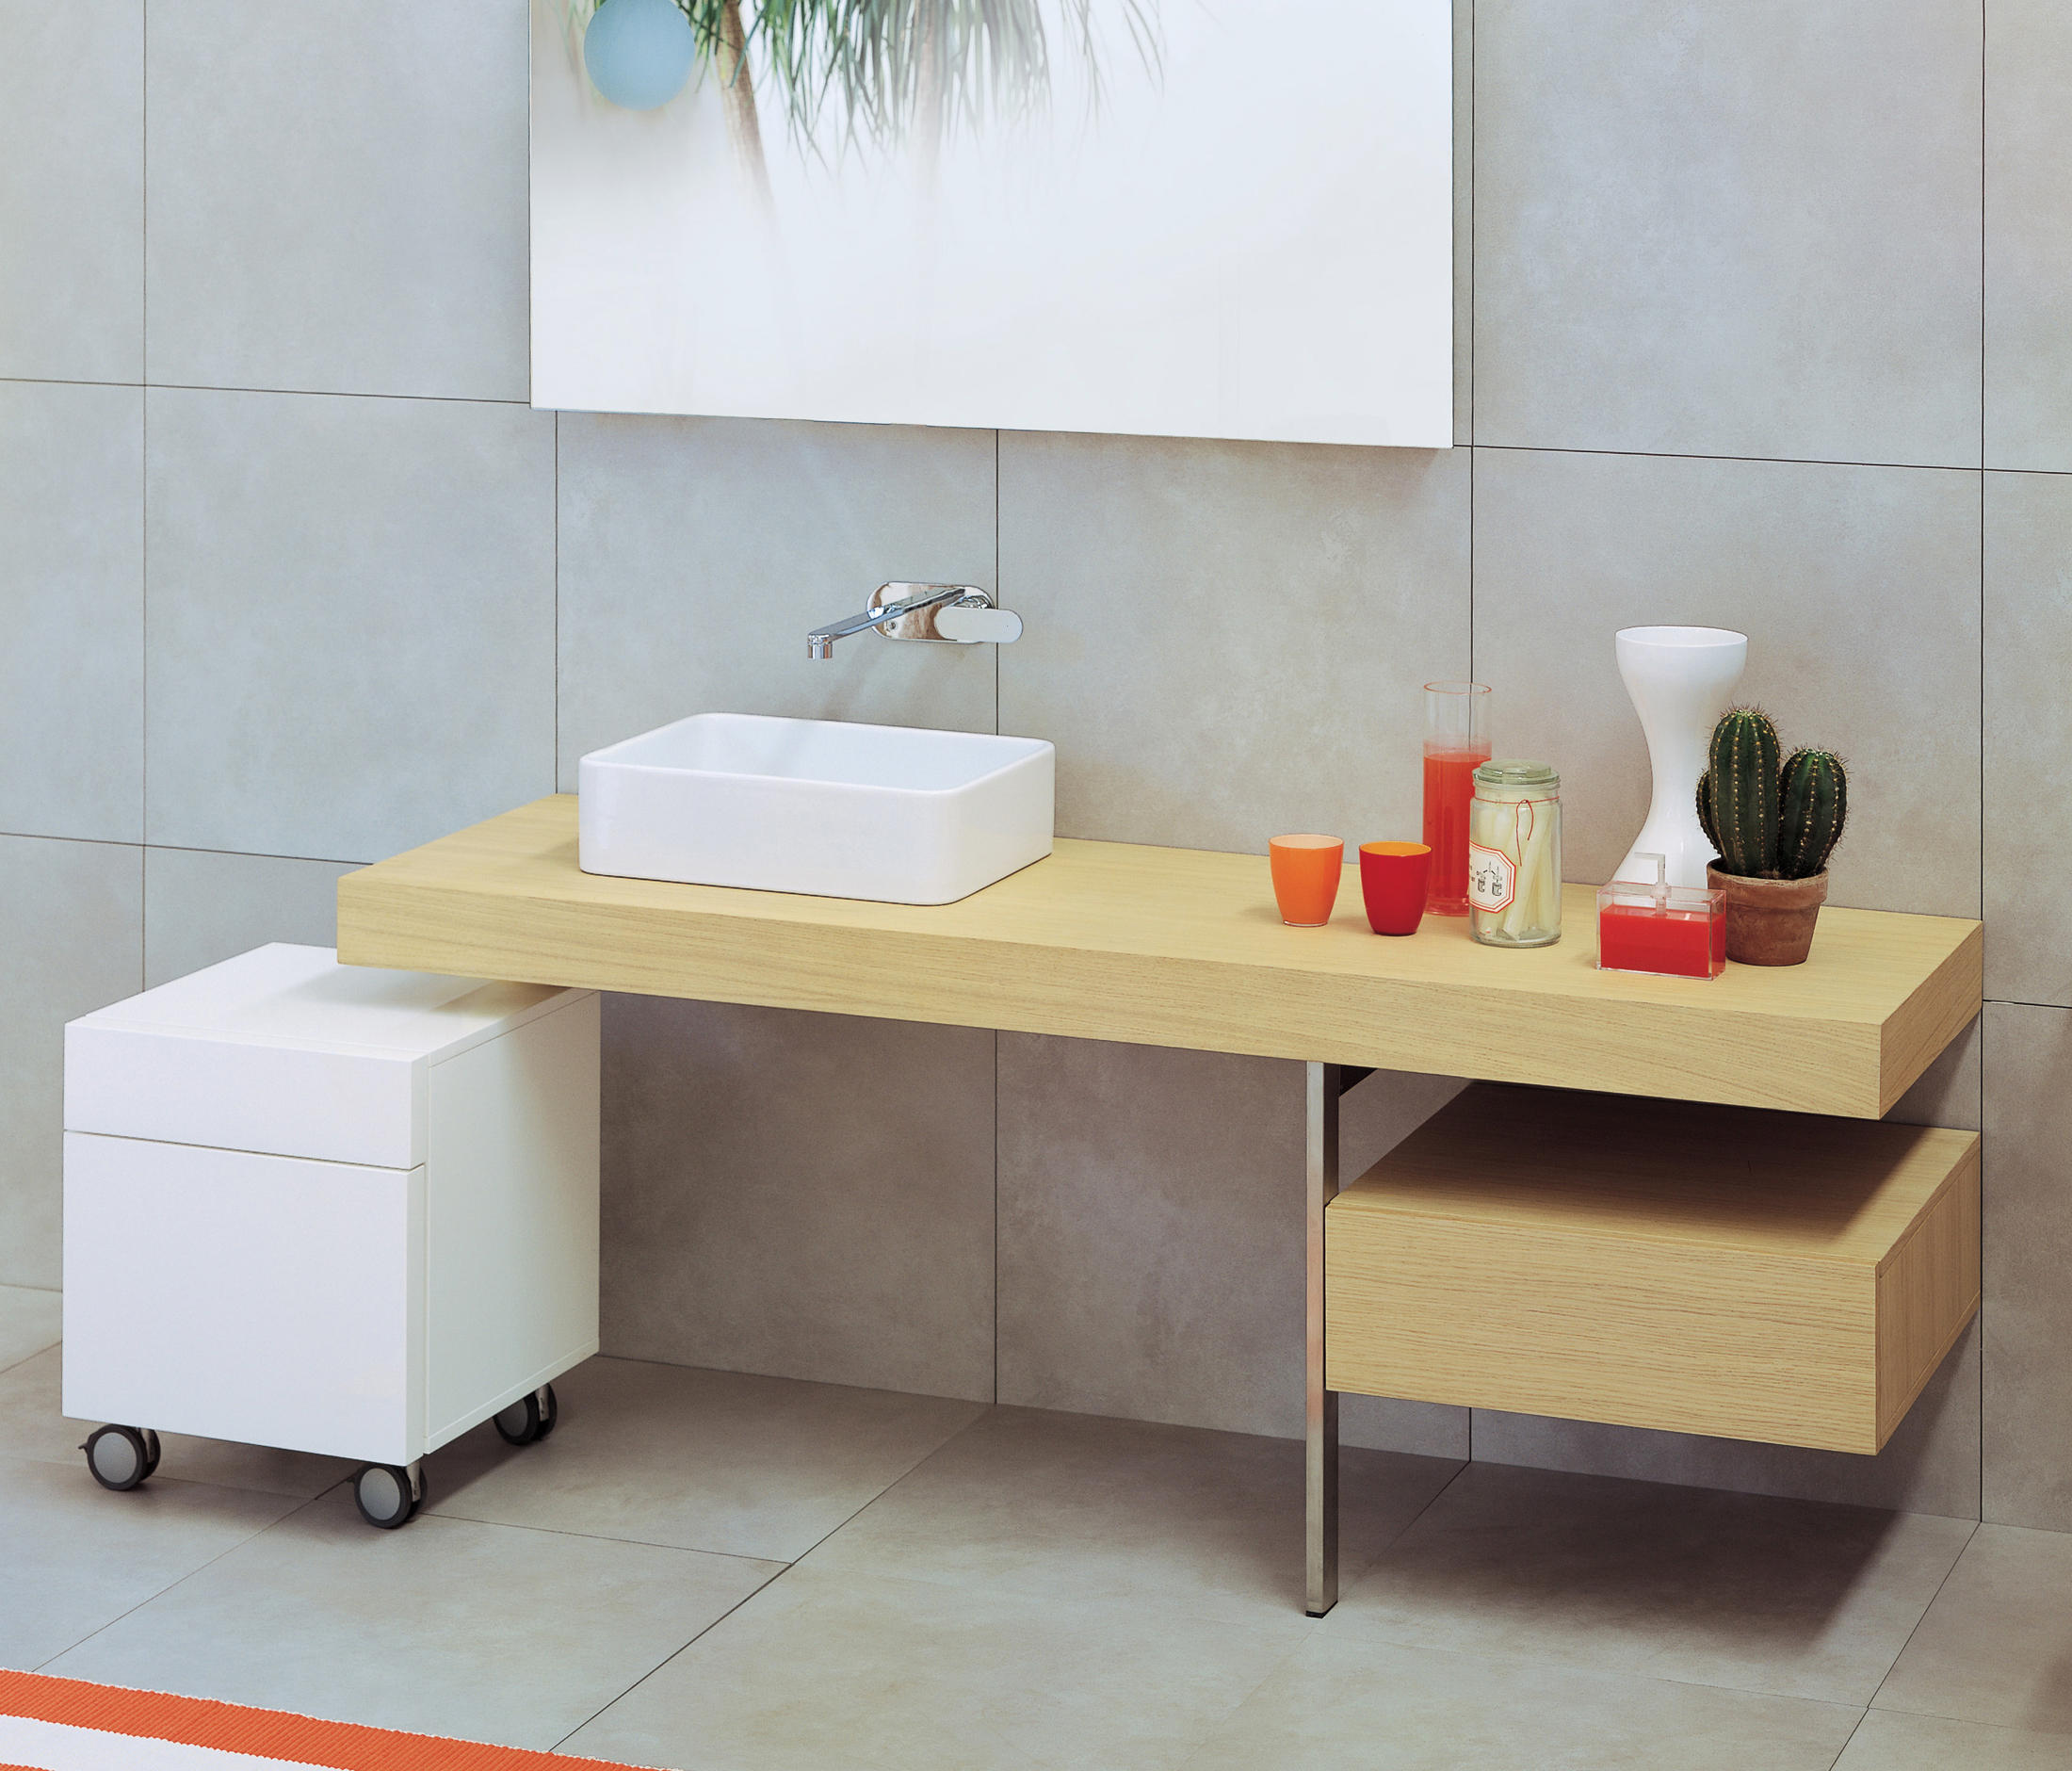 Wash Bath Tub Ba Eras Individual De Ceramica Flaminia Architonic # Muebles Acabado Wash